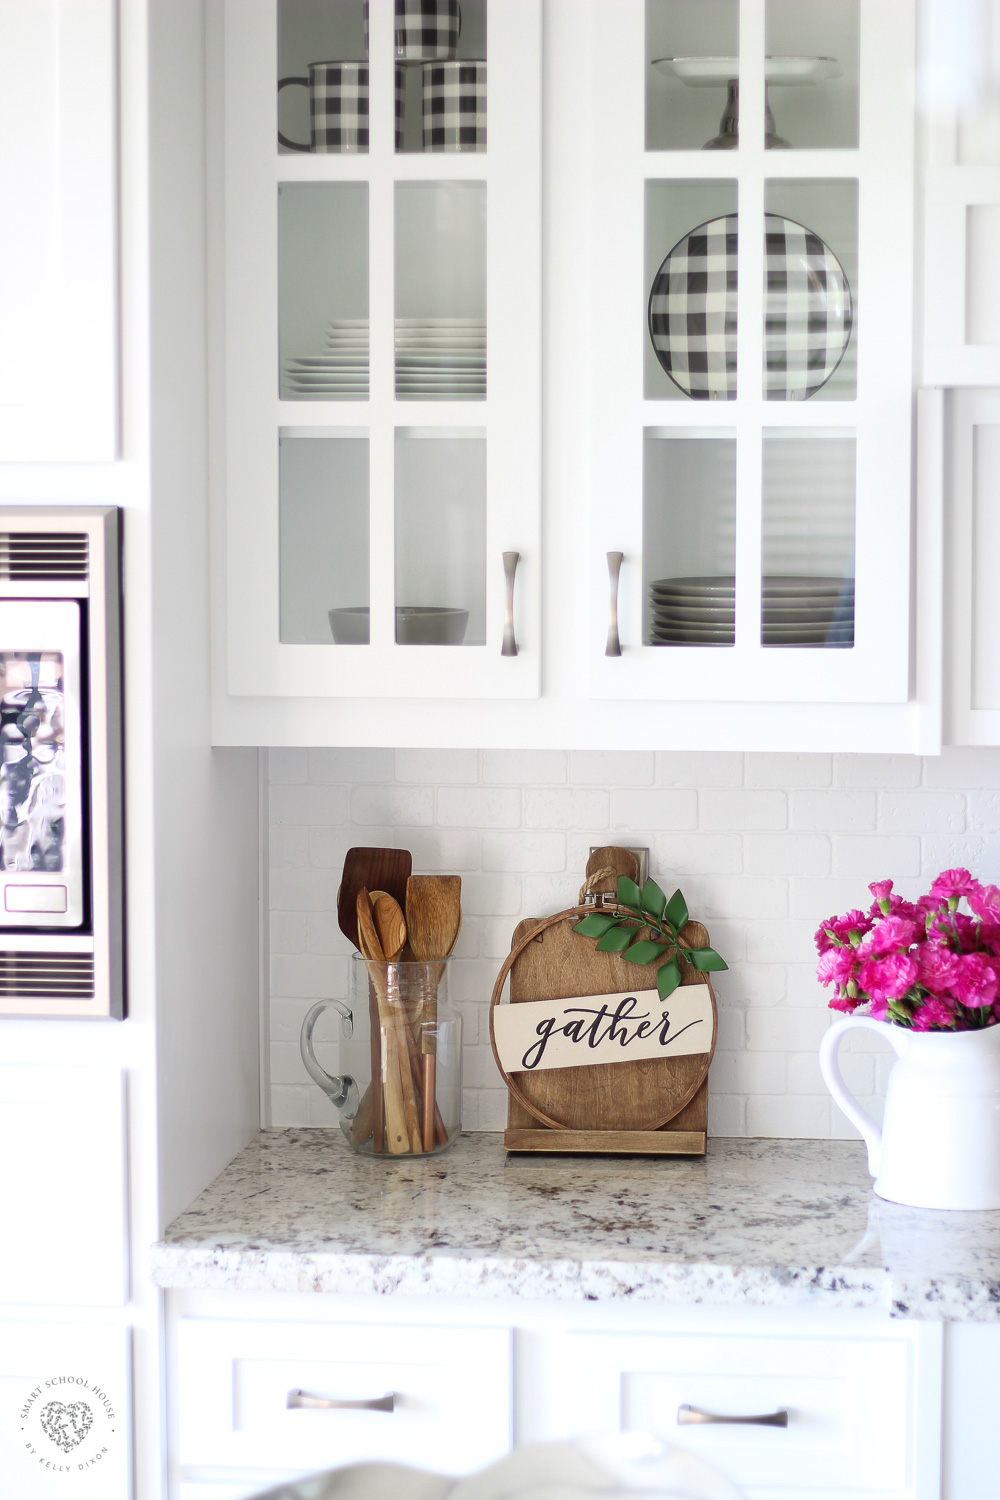 Decorating with Wood Cutting Boards. #cuttingboards #farmhousekitchen #kitchendecor #buffaloCheck